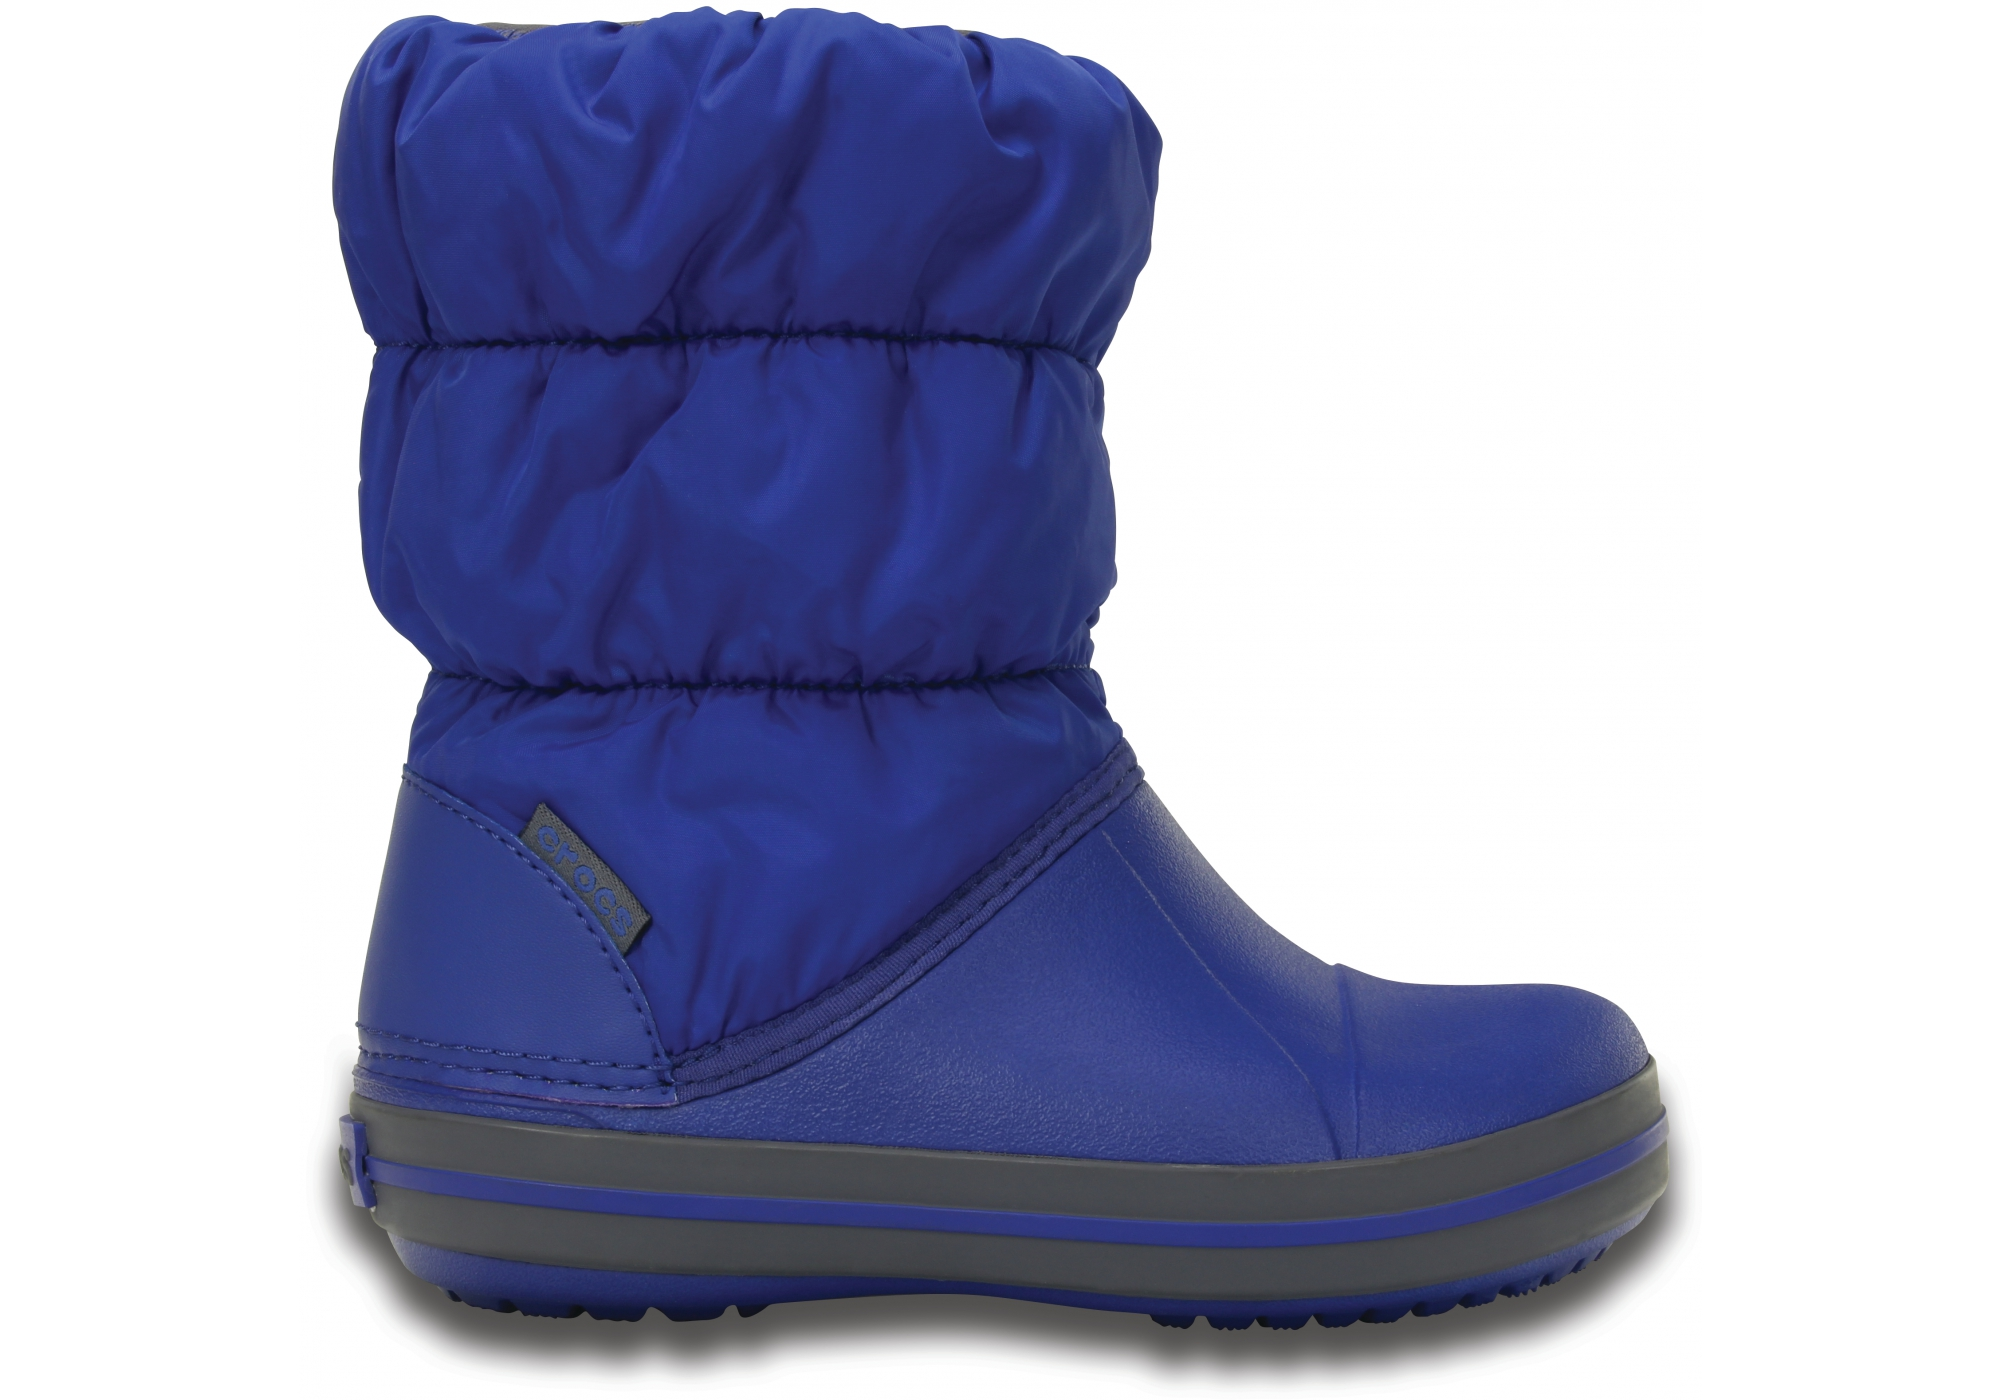 Crocs modré sněhule Winter Puff Boot Kids Cerulean Blue